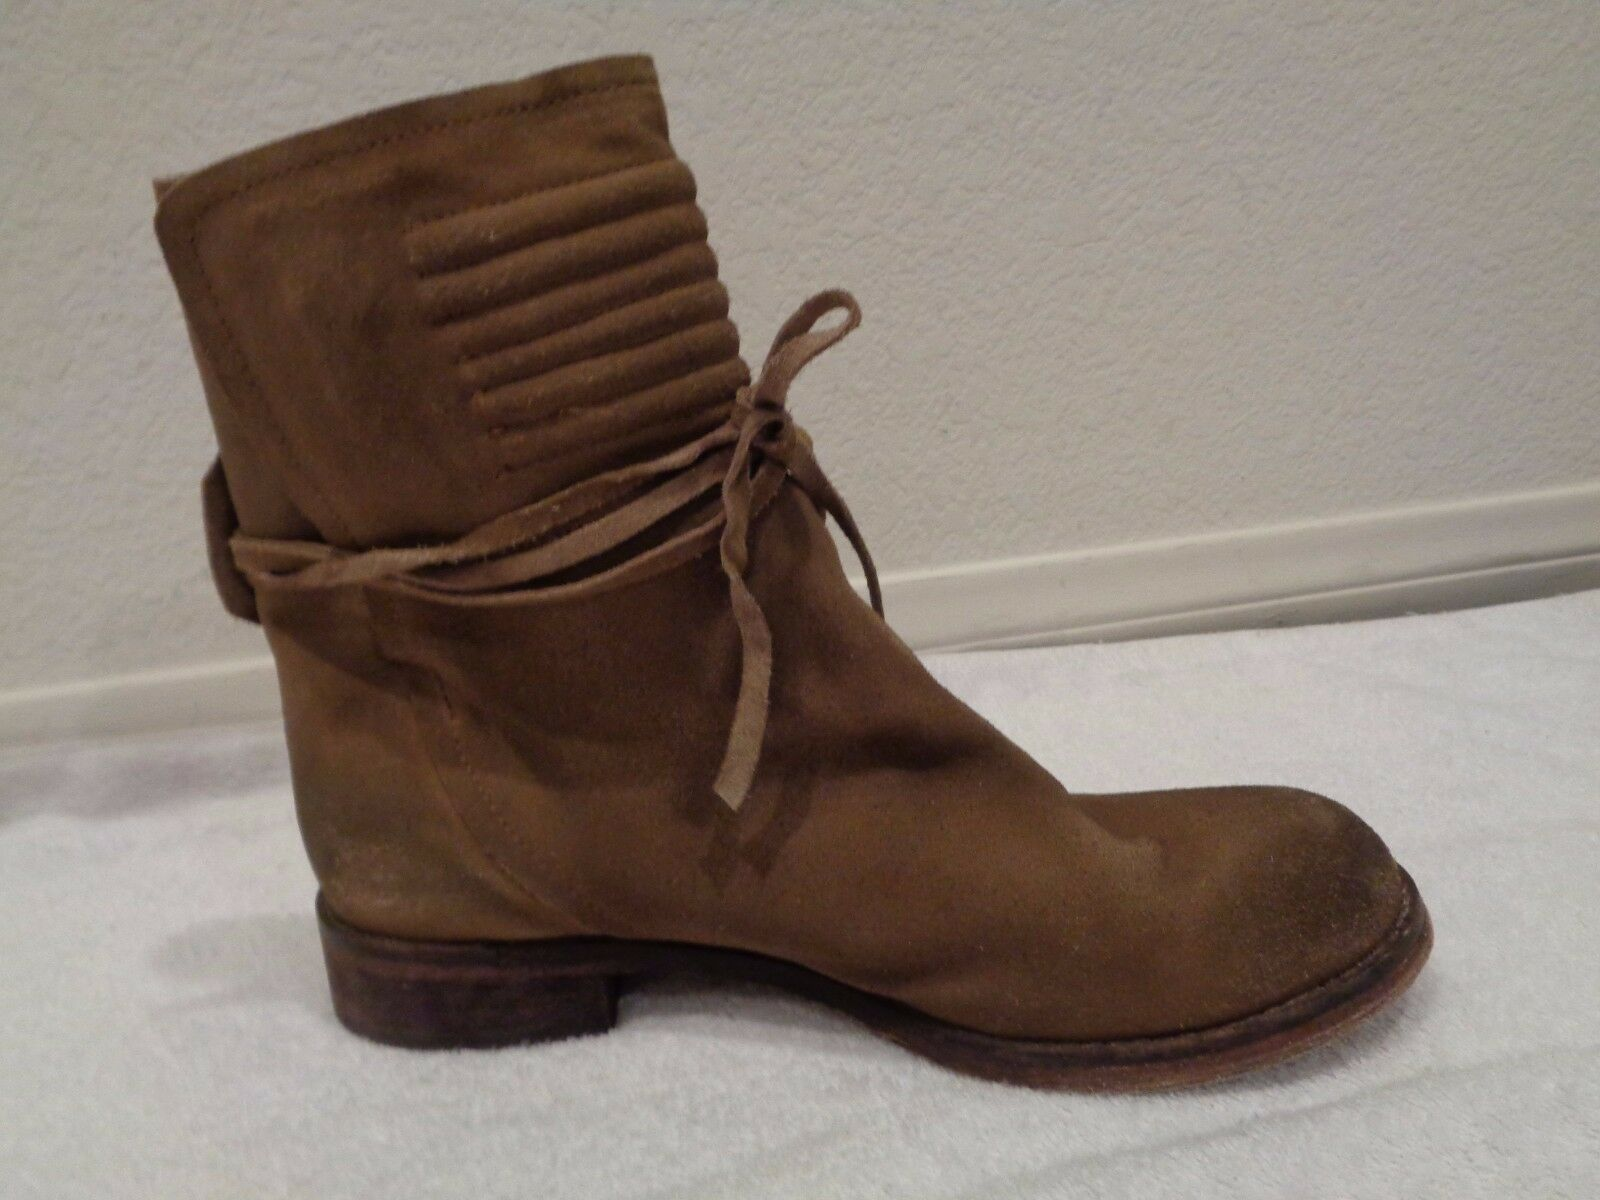 198.00 FREE PEOPLE Suede Wrap camel brown Ankle Boots SZ 38